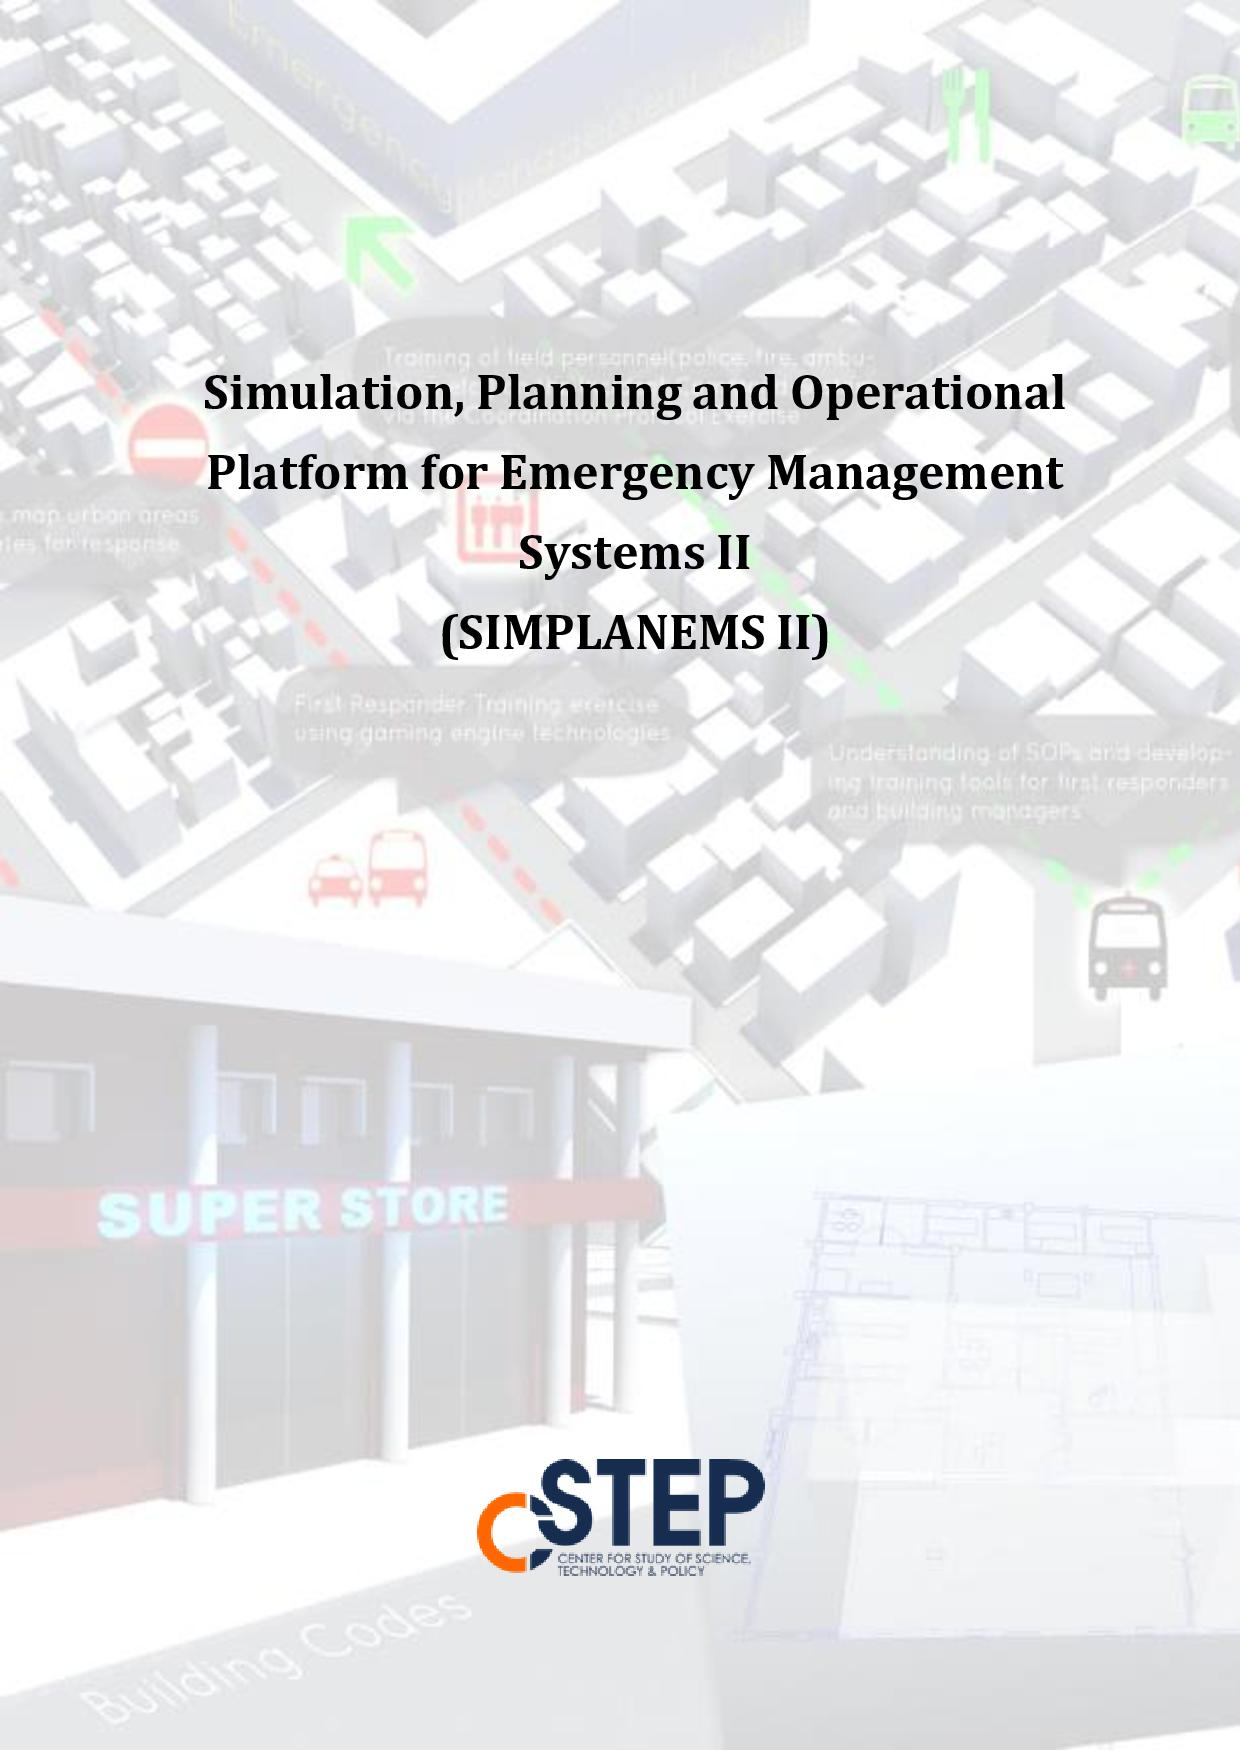 Simulation, Planning and Operational Platform for Emergency Management Systems II (SIMPLANEMS II)